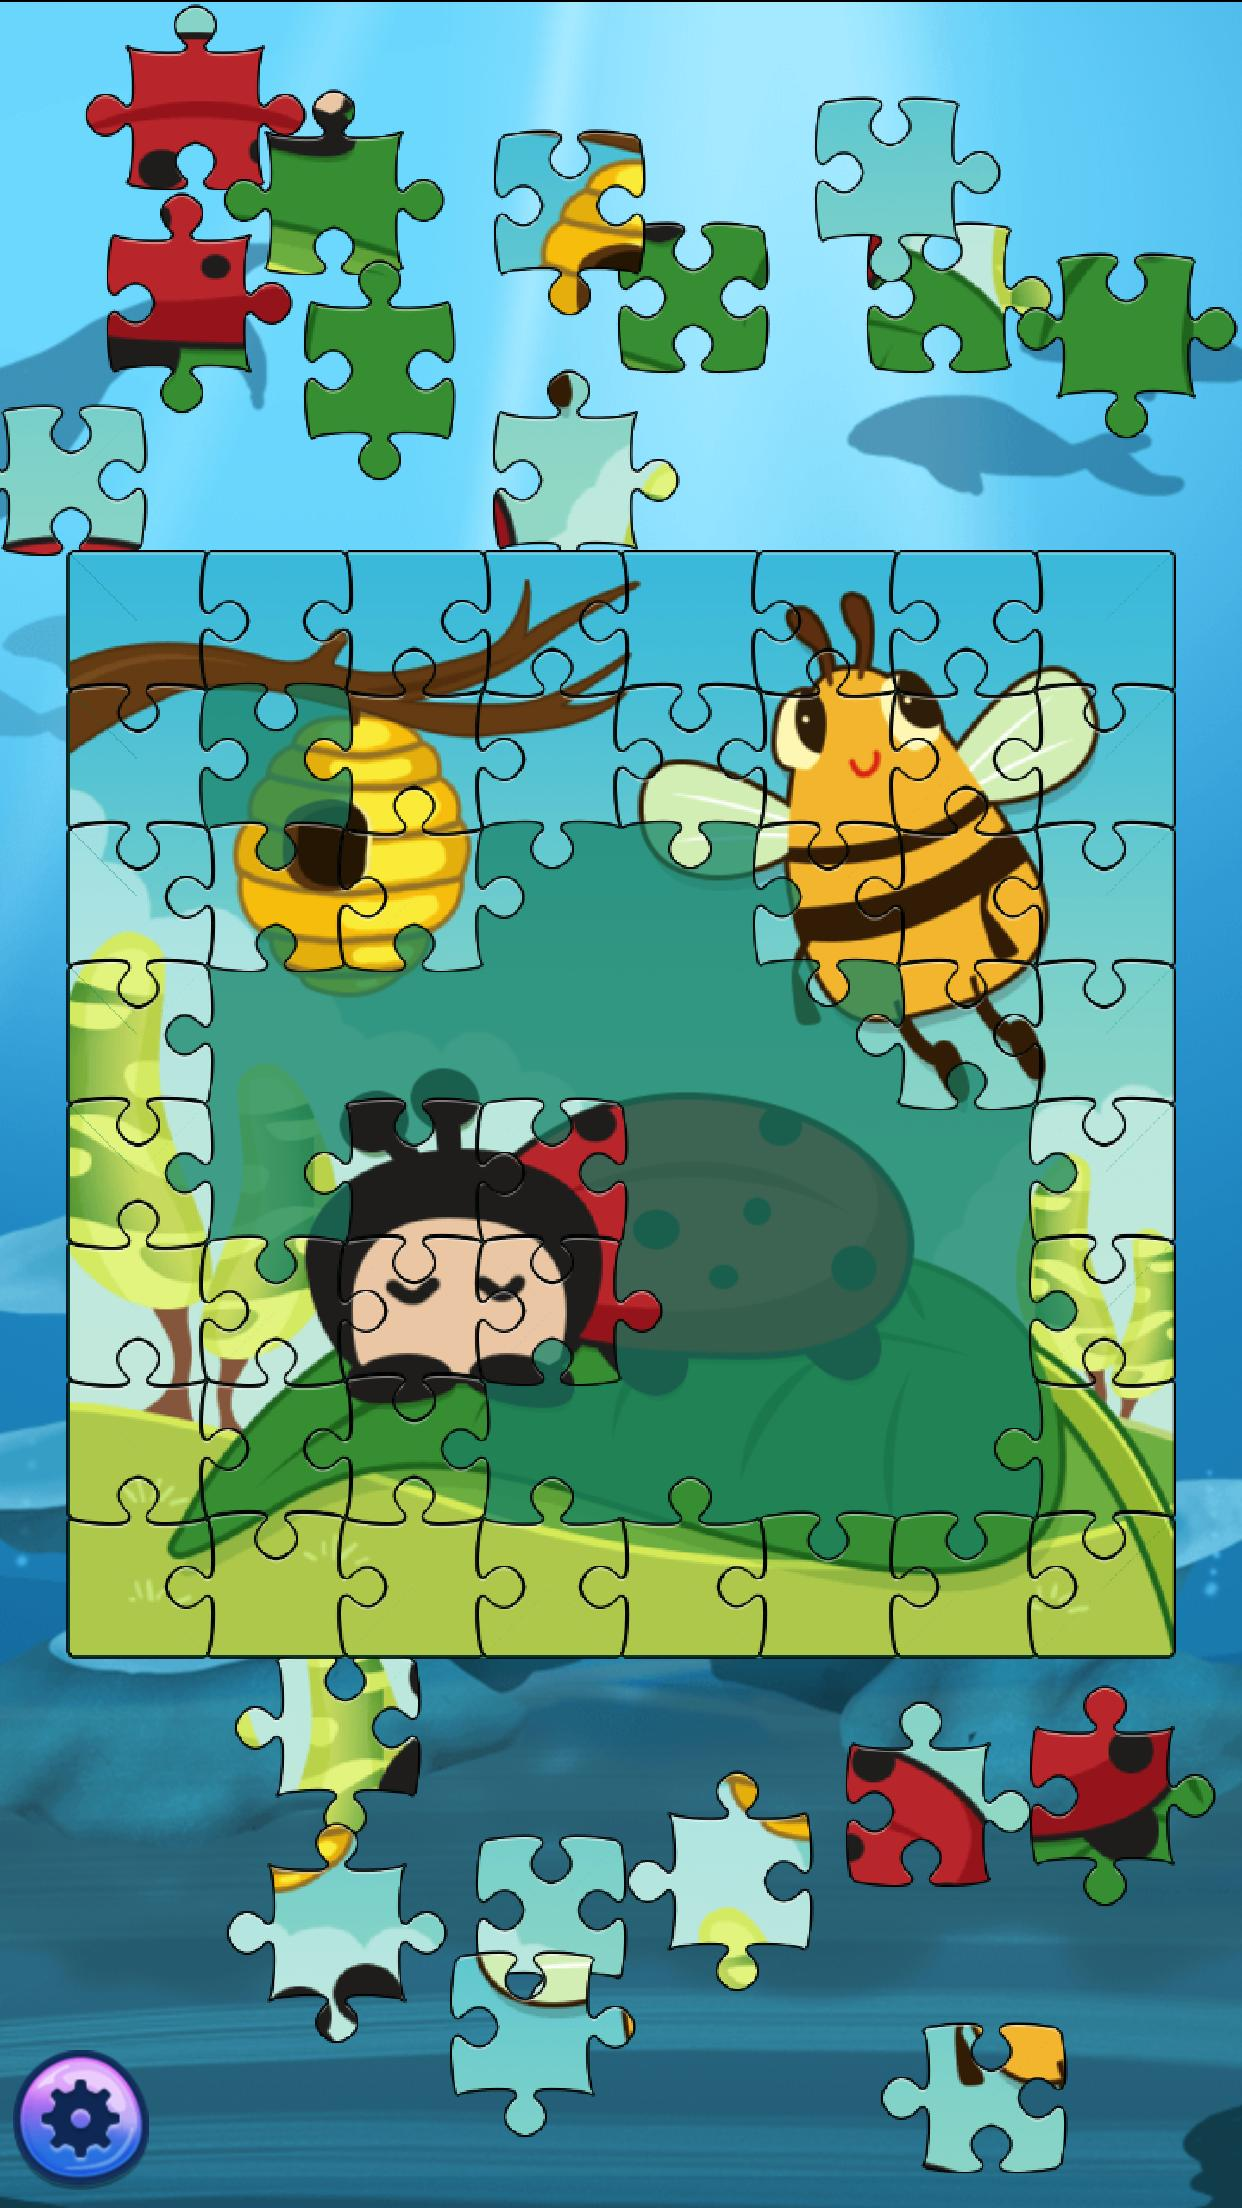 The Mystic Puzzland - Griddlers & Nonogram Puzzles 1.0.26 Screenshot 13